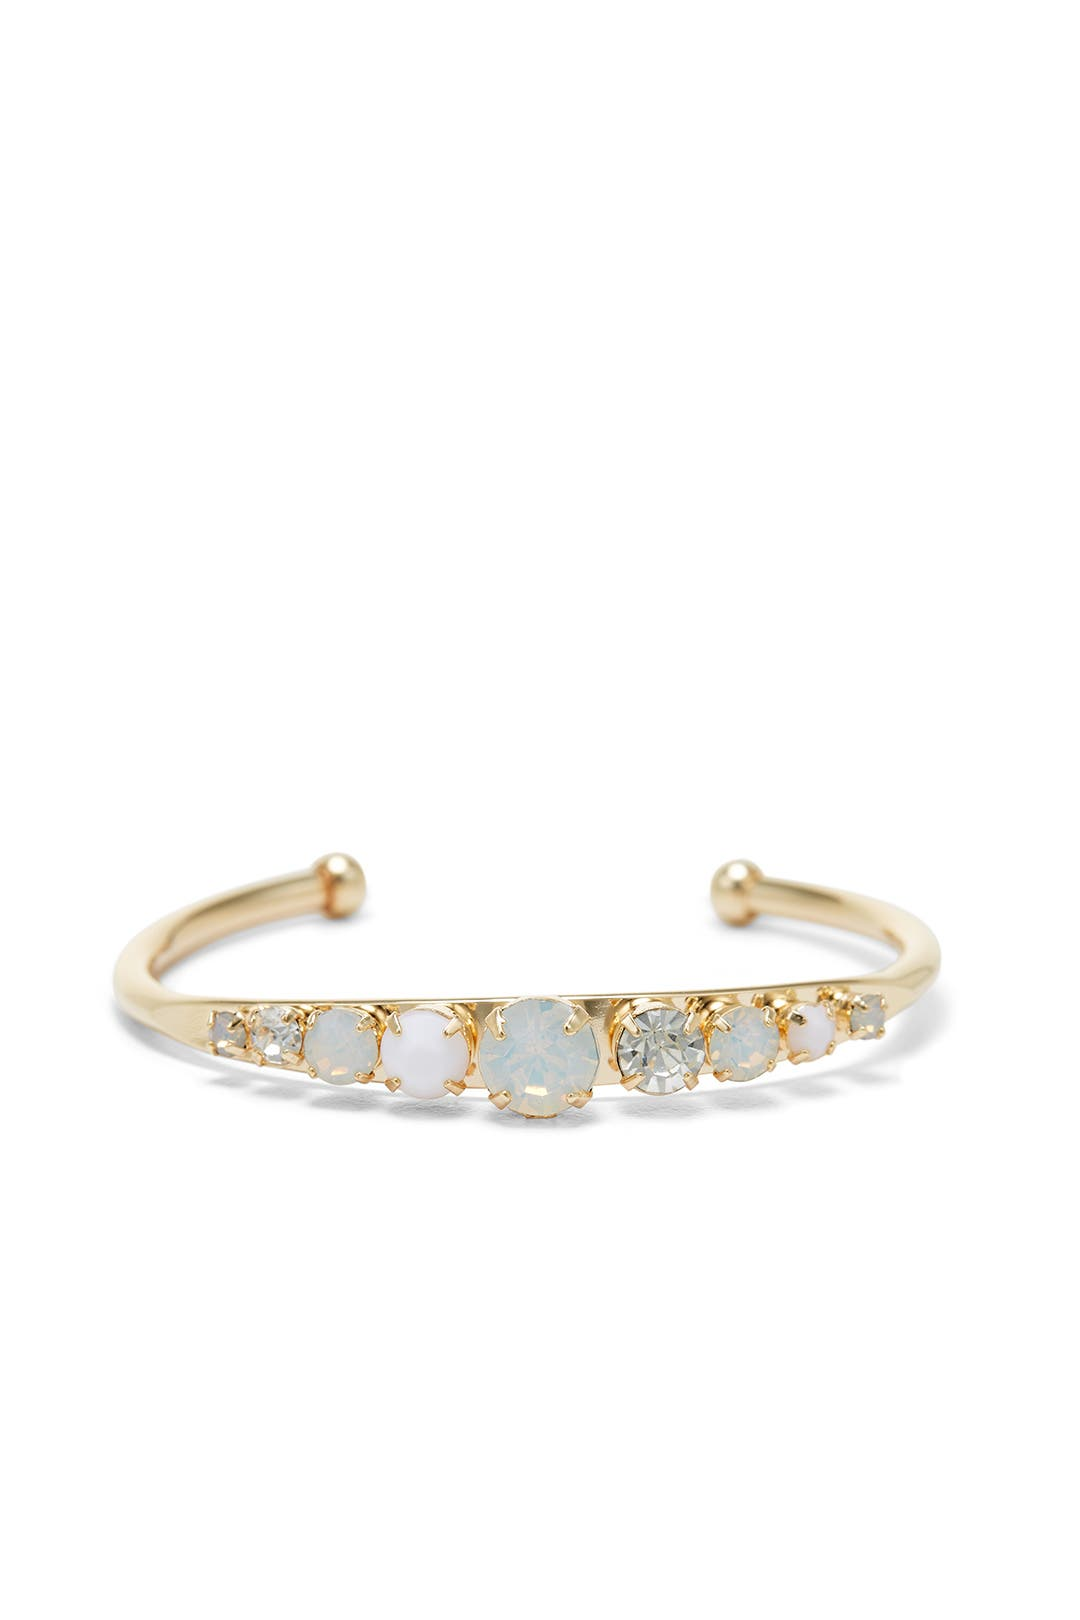 c6929b3b9f49c8  10.00 More Details · Slate   Willow Accessories Crystal Studded Bracelet